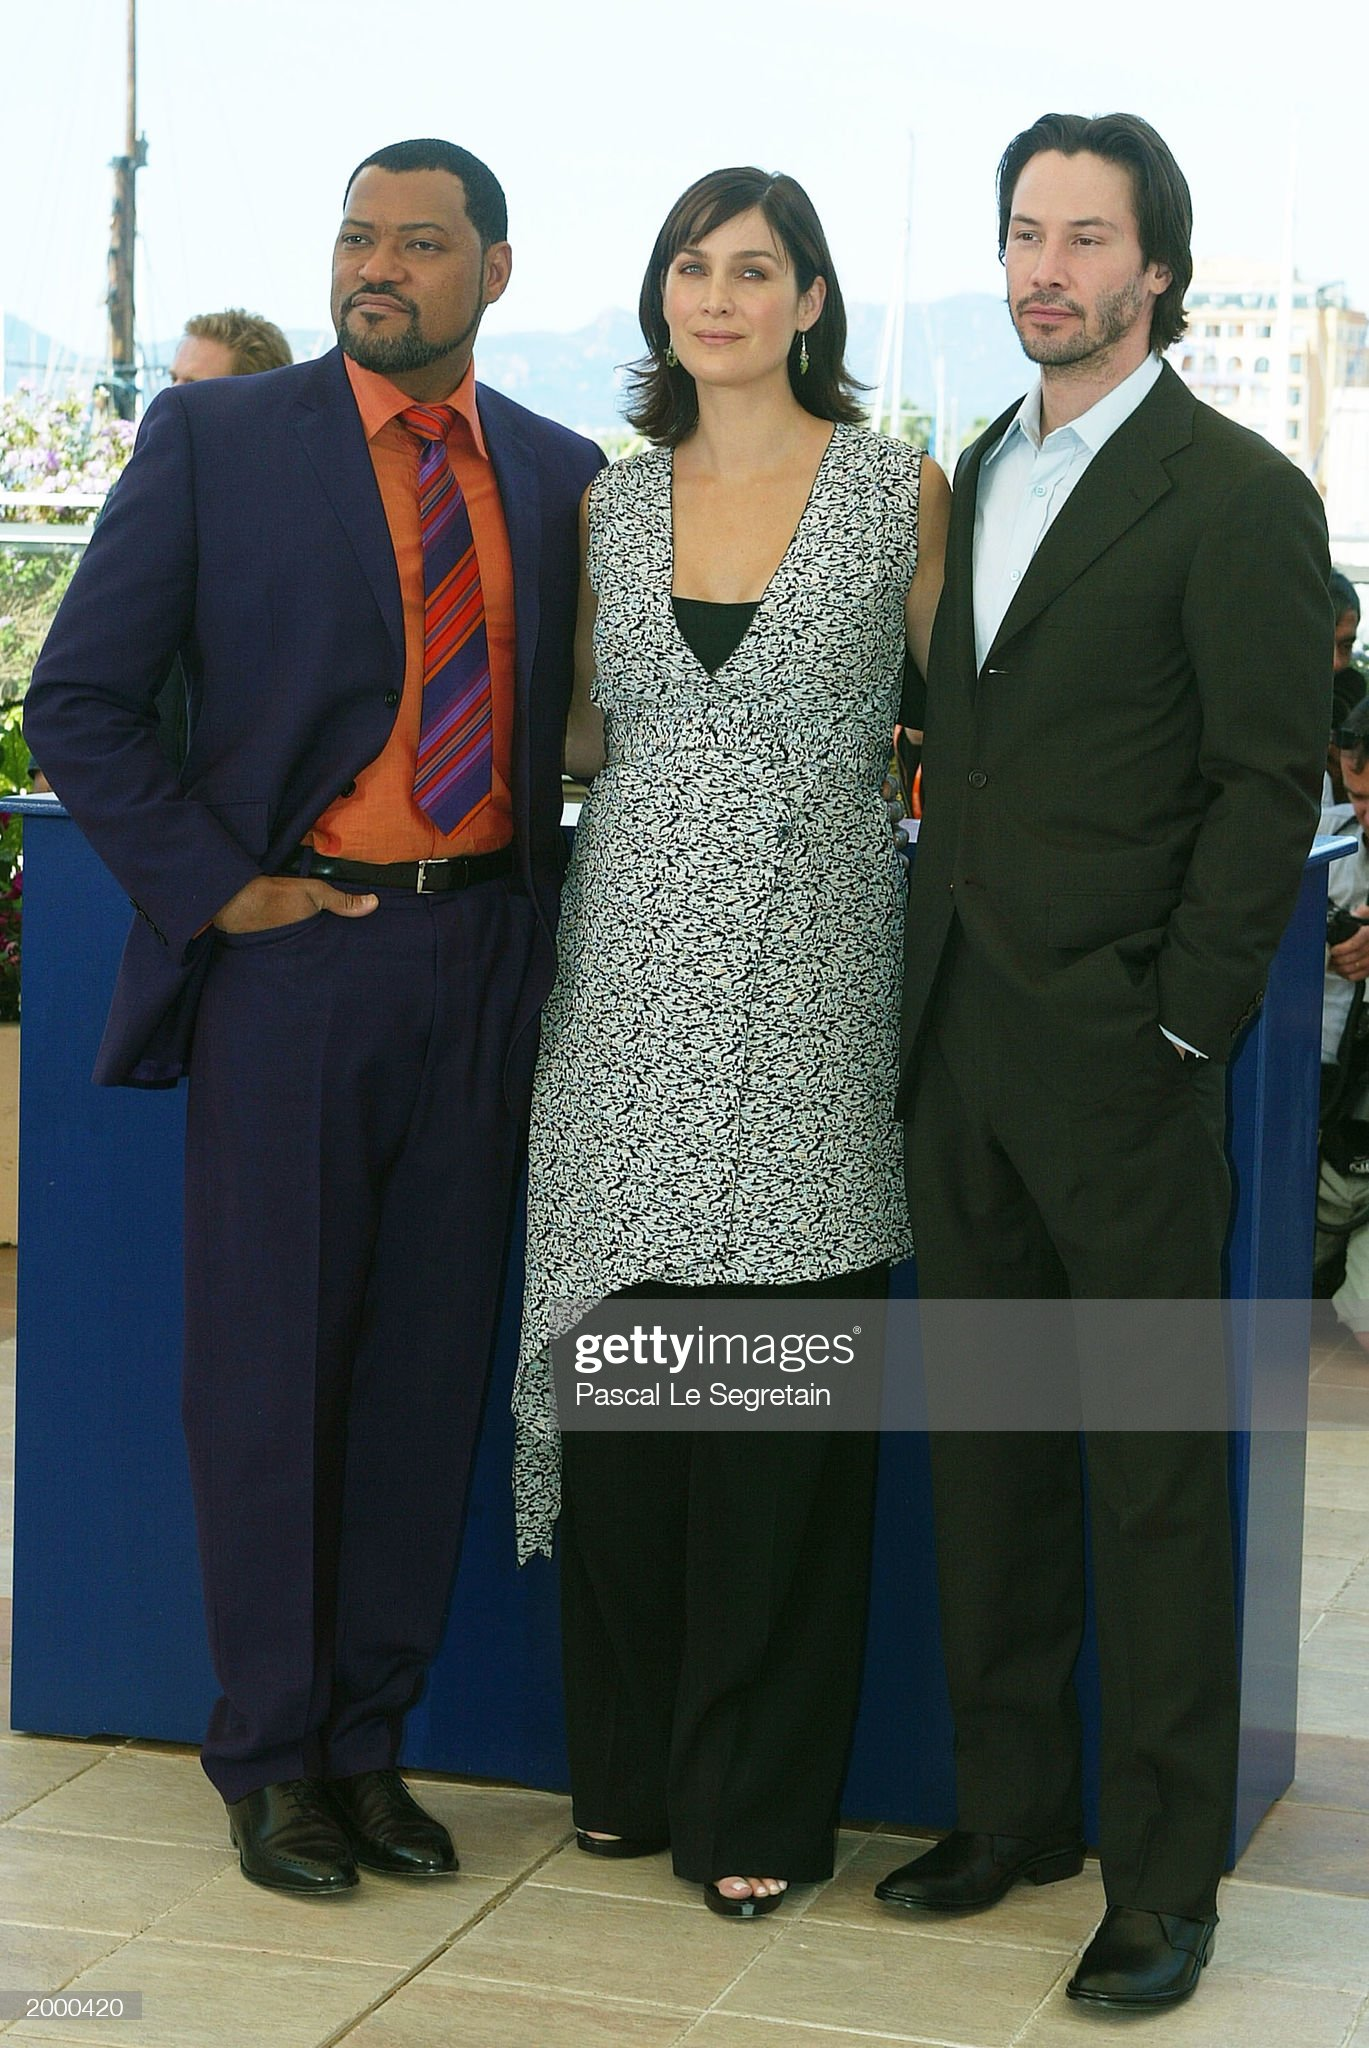 ¿Cuánto mide Laurence Fishburne? - Real height Actors-laurence-fishburne-carrieanne-moss-and-keanu-reeves-pose-for-picture-id2000420?s=2048x2048